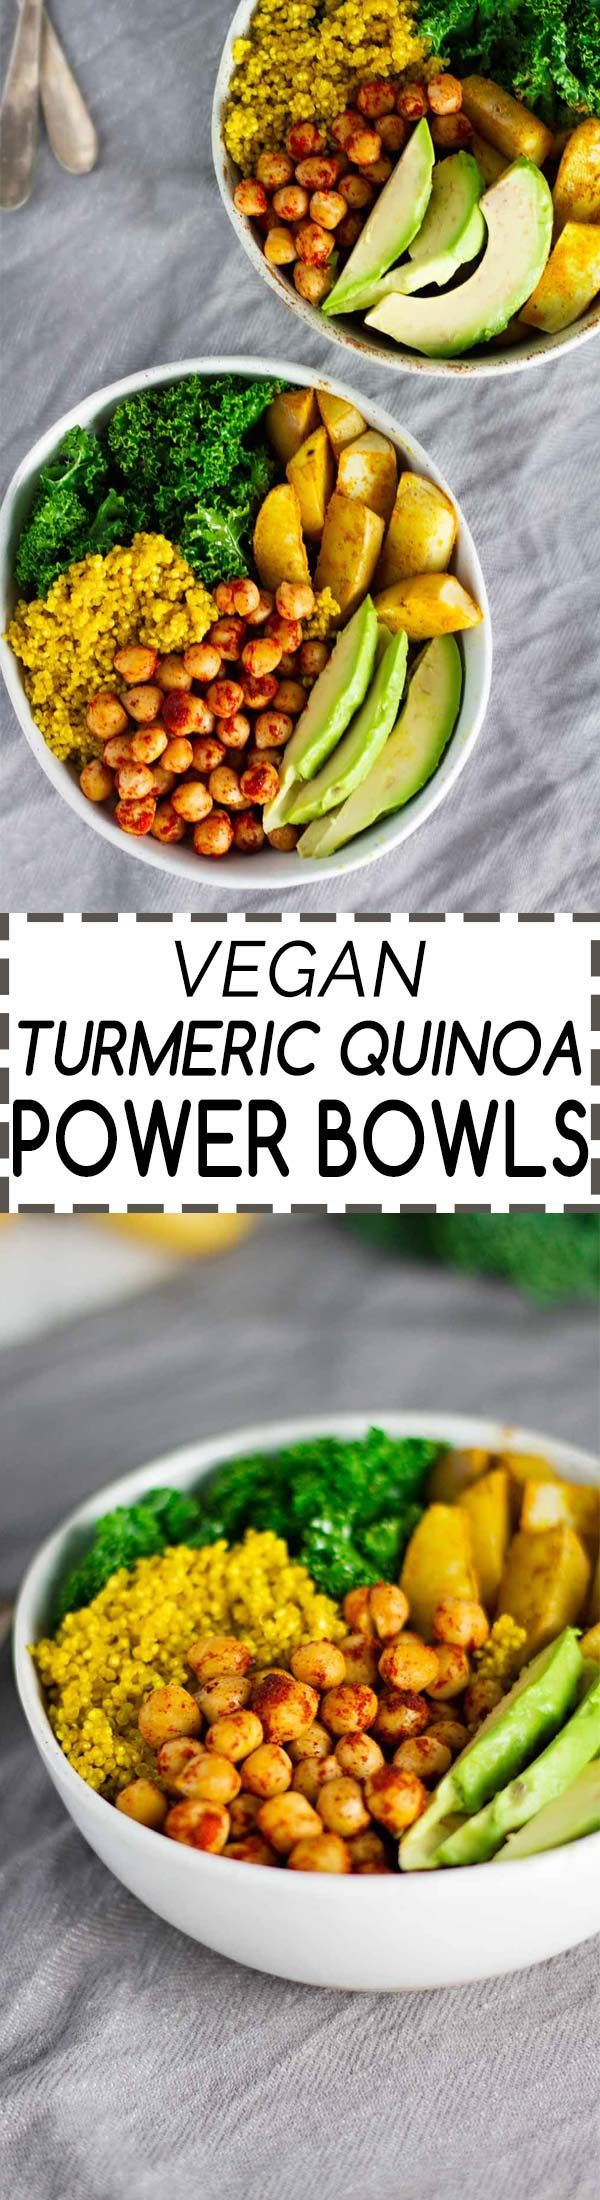 Vegan Turmeric Quinoa Power Bowls! Anti-Inflammatory, nutrient packed, and easy to make. Perfect for a weeknight dinner! ;)